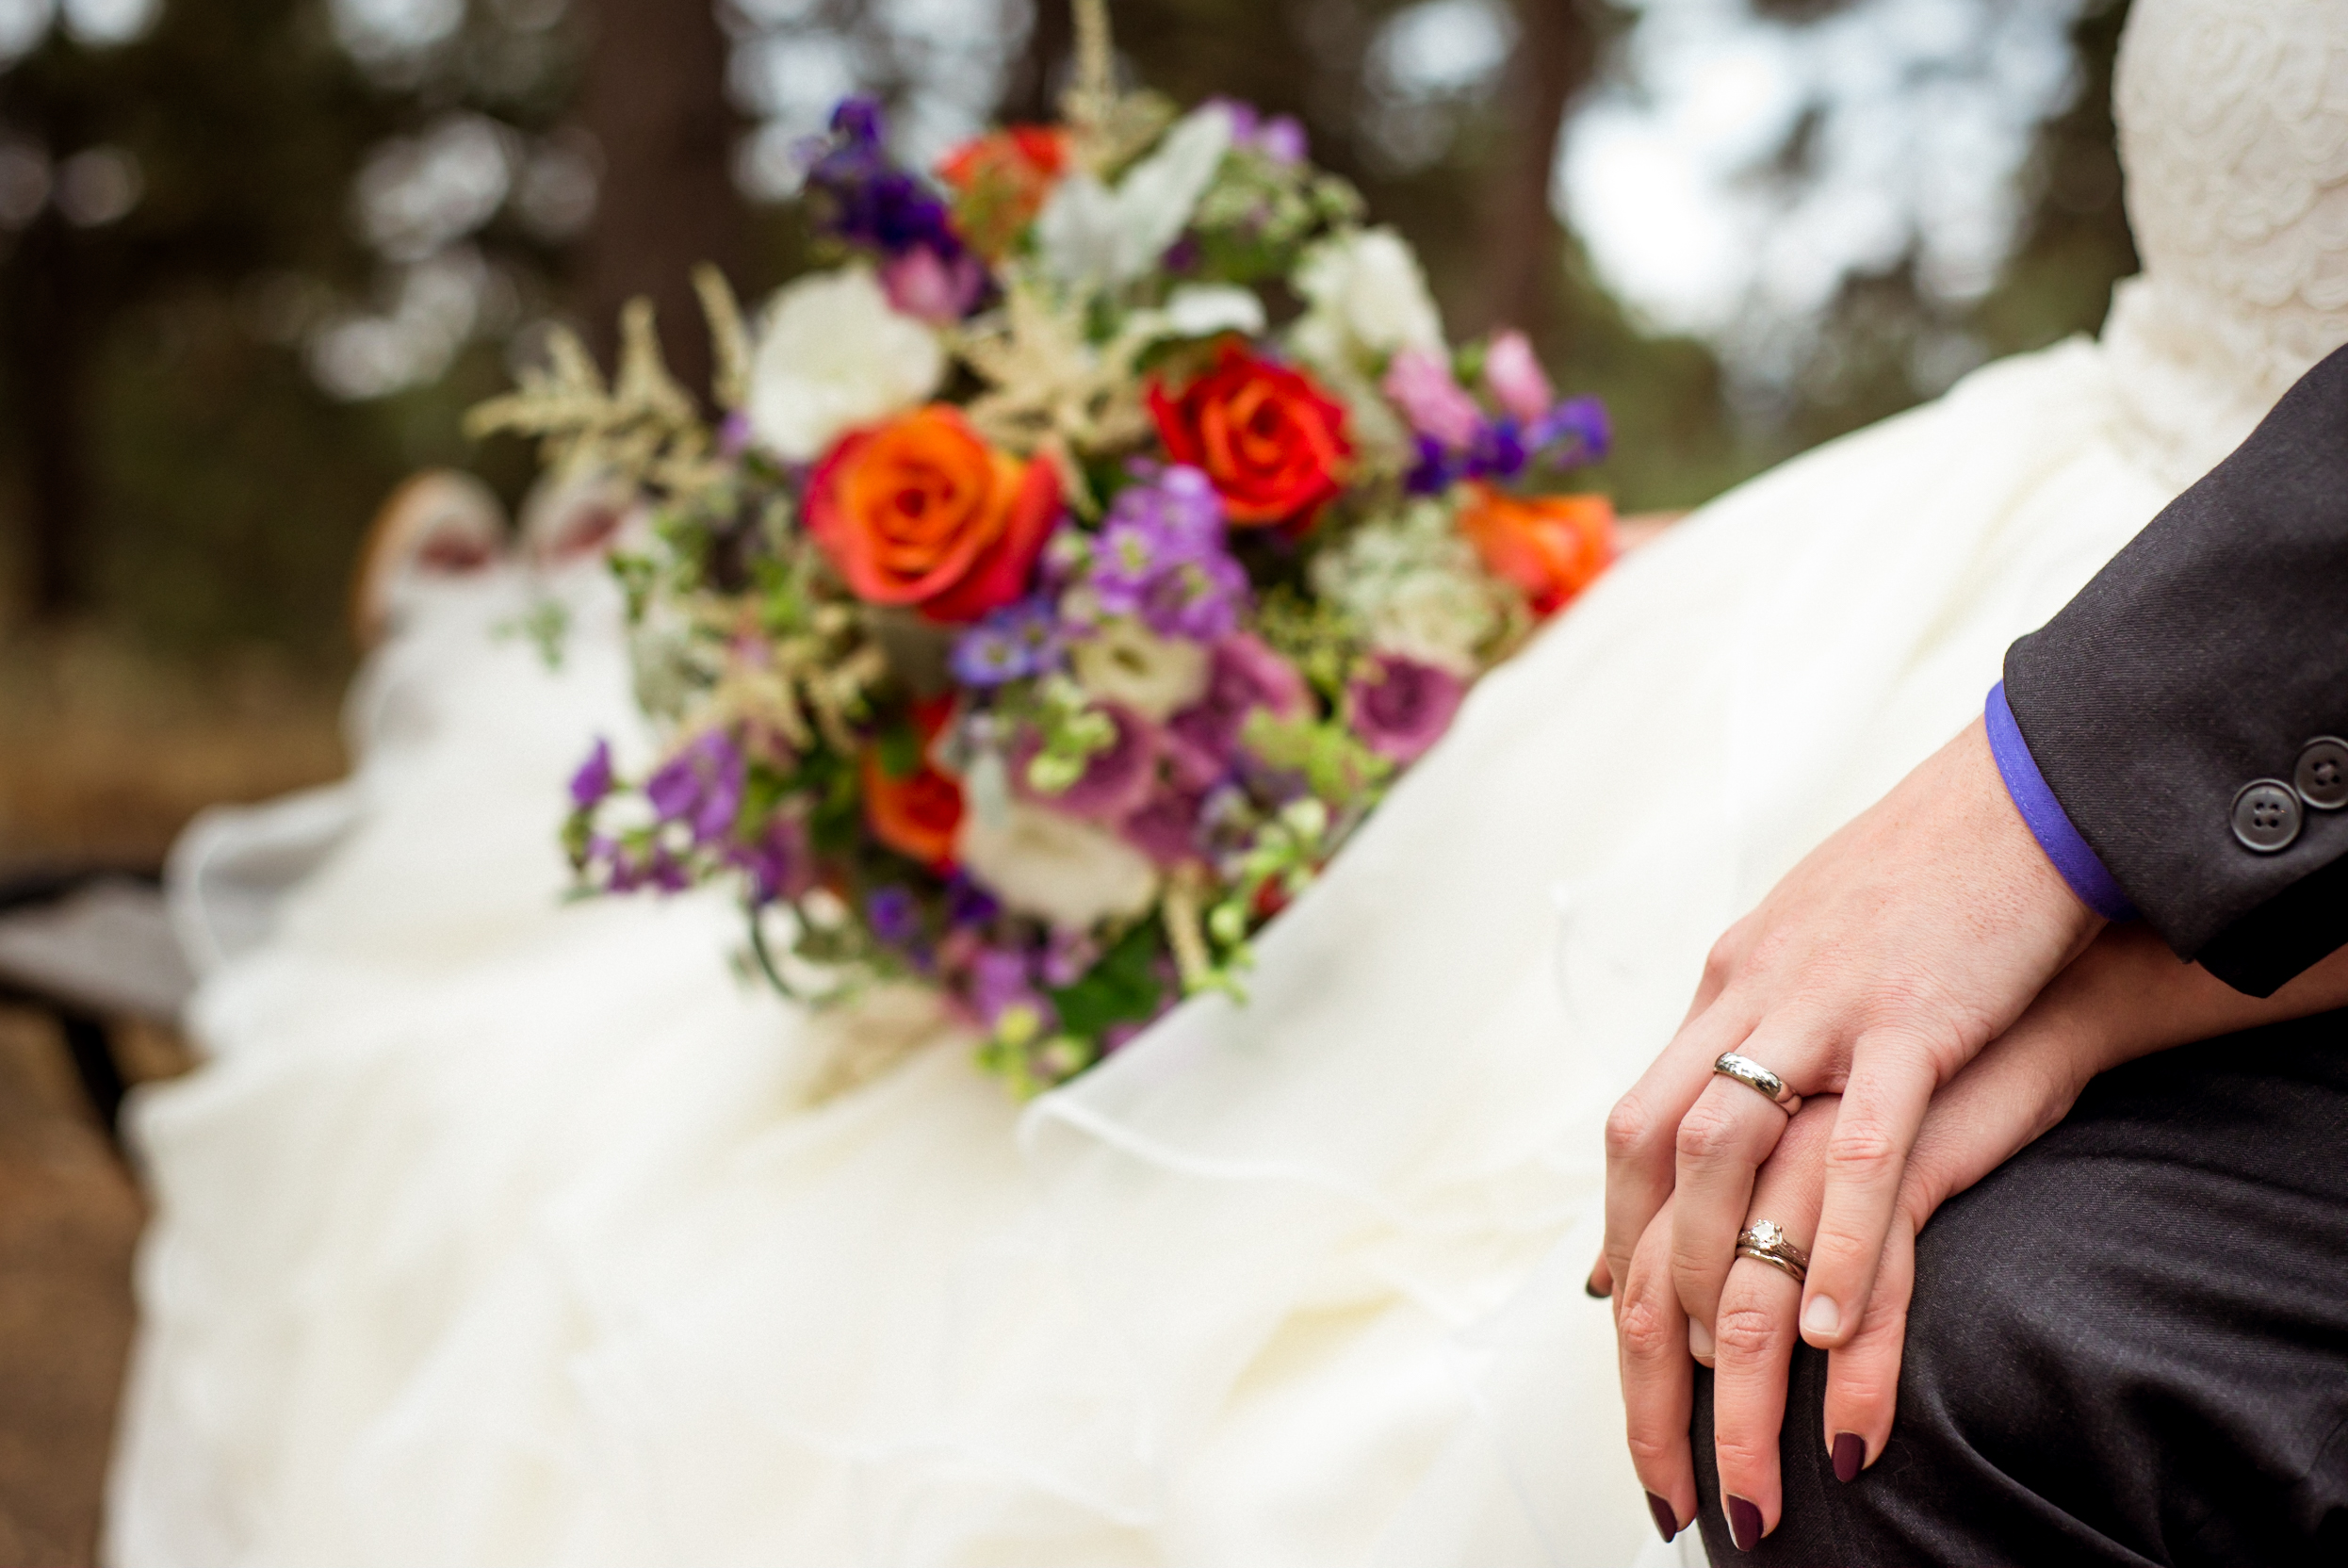 WEDDING OFFICIATING - A warm and personalized ceremony to mark the new stage of your relationship.